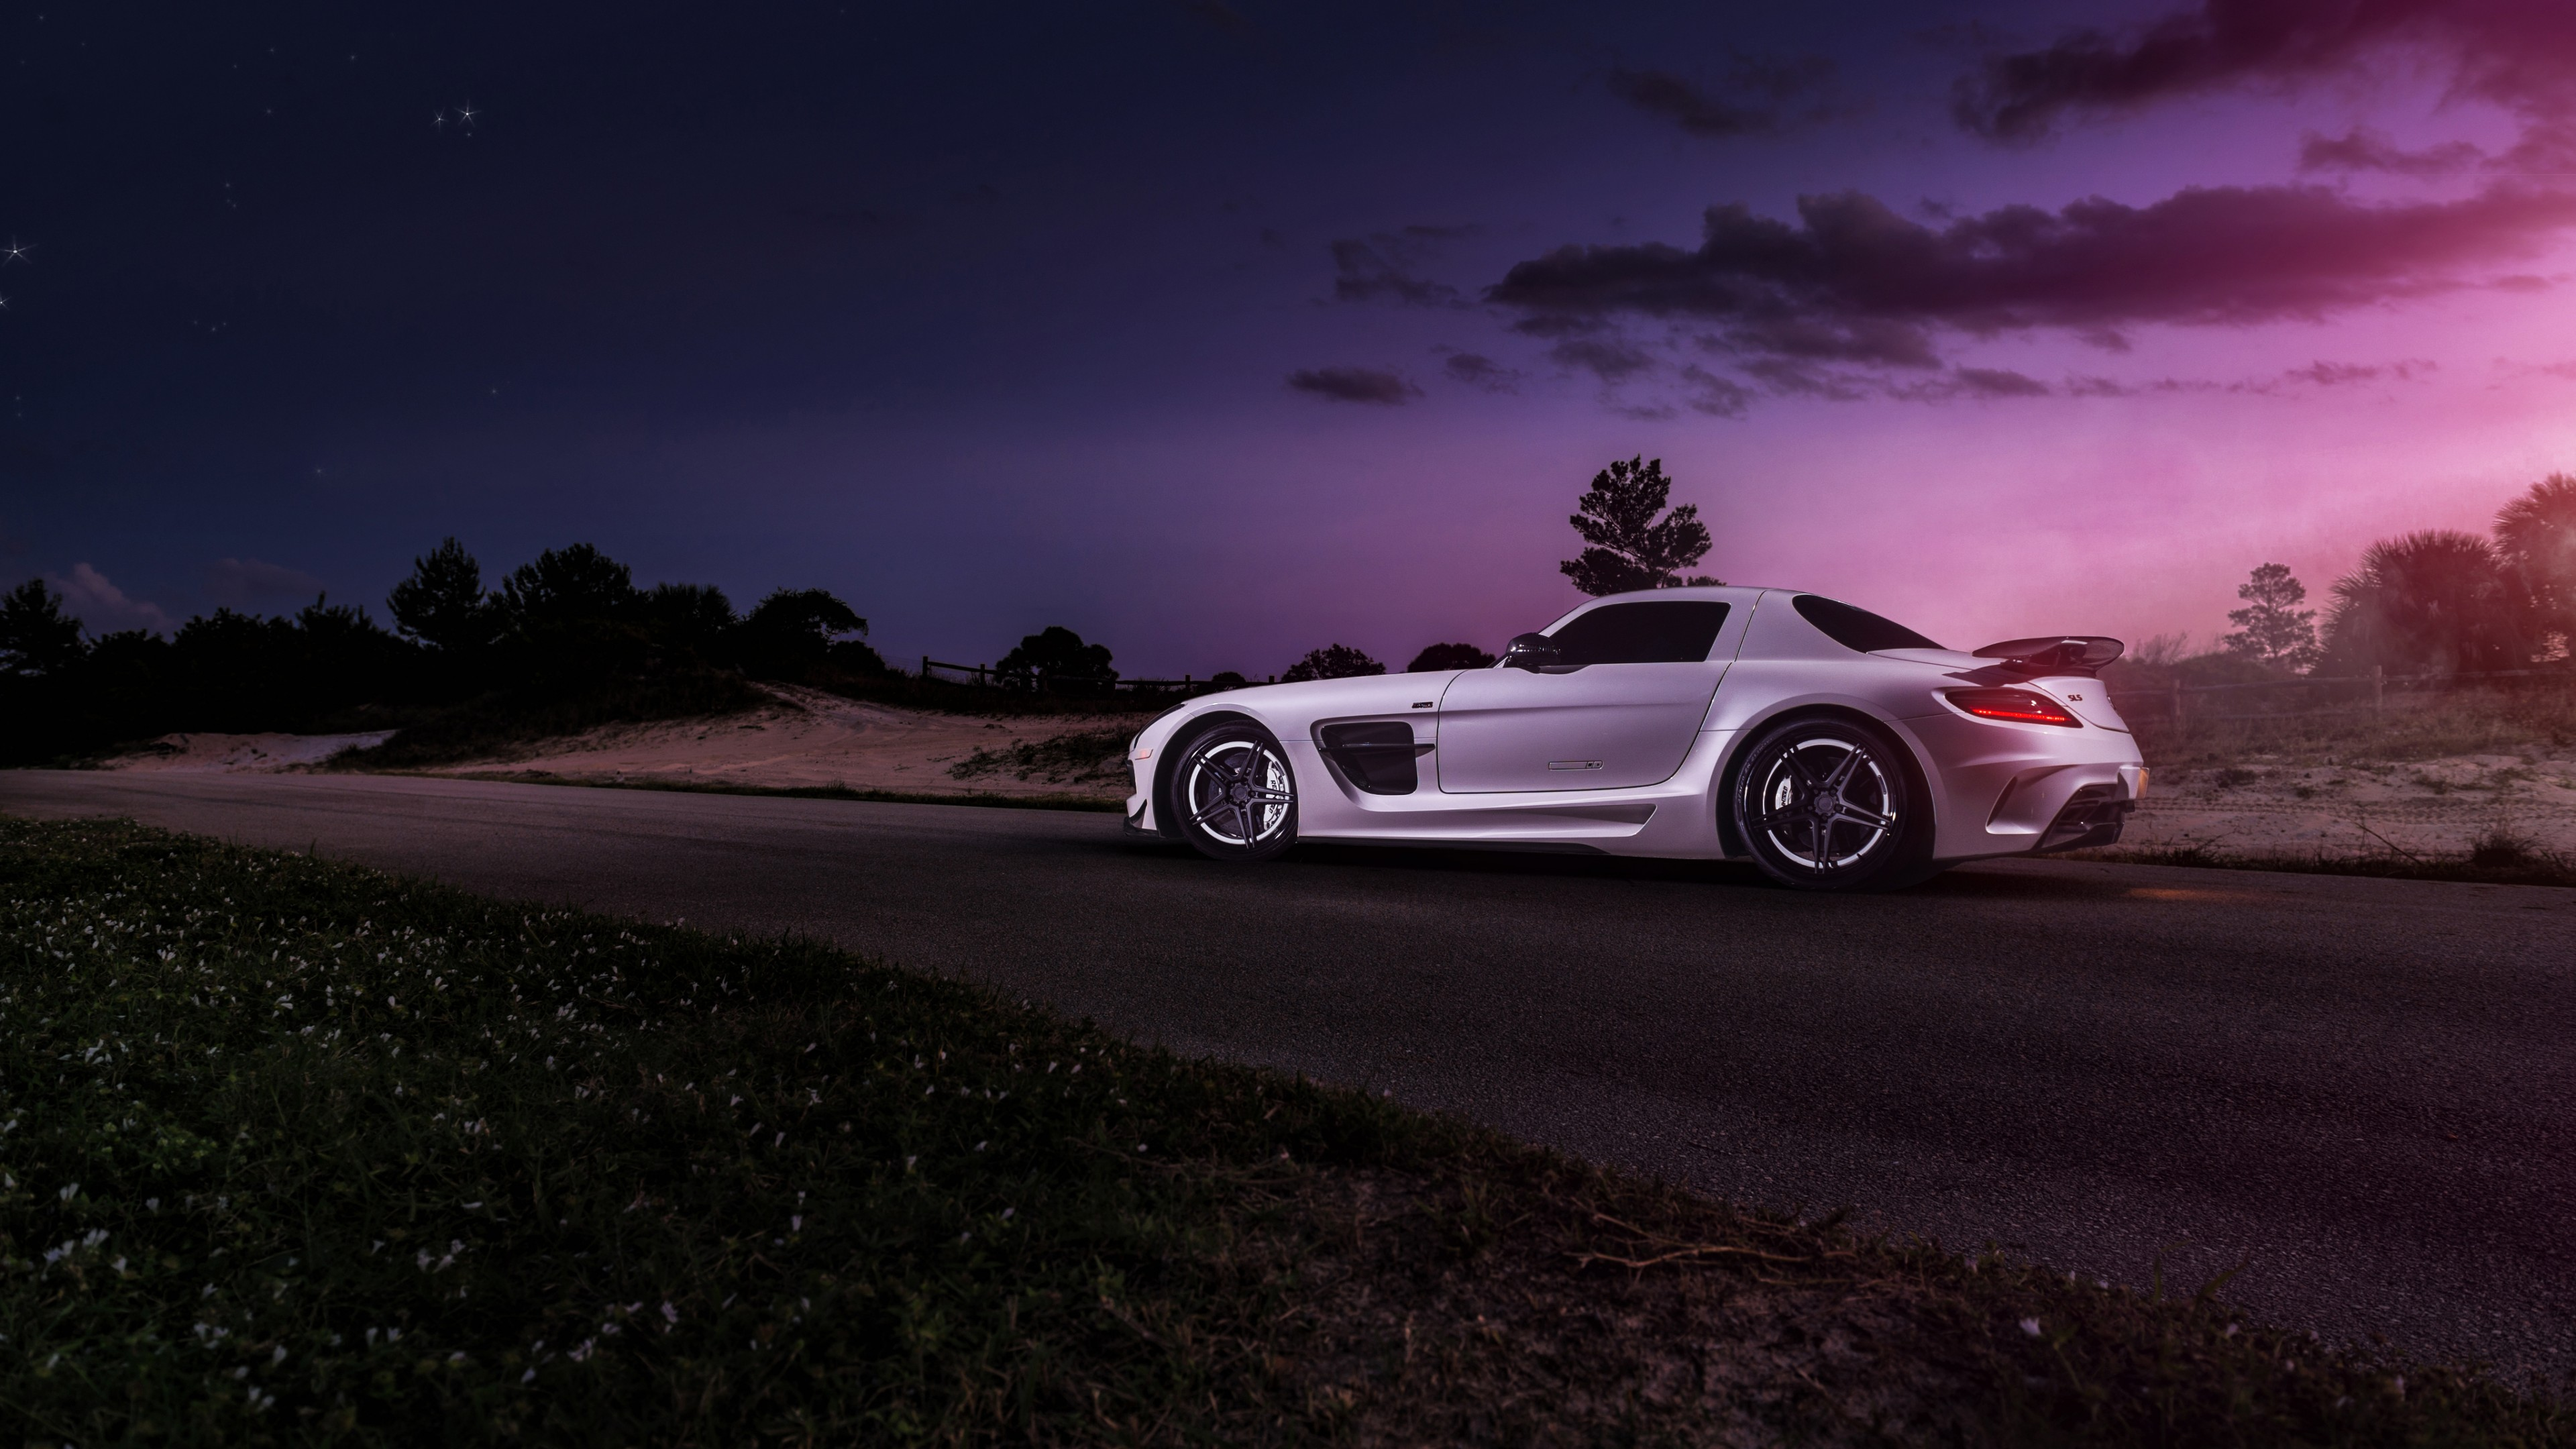 Mercedes-Benz SLS Black Series HD Wallpaper 4K